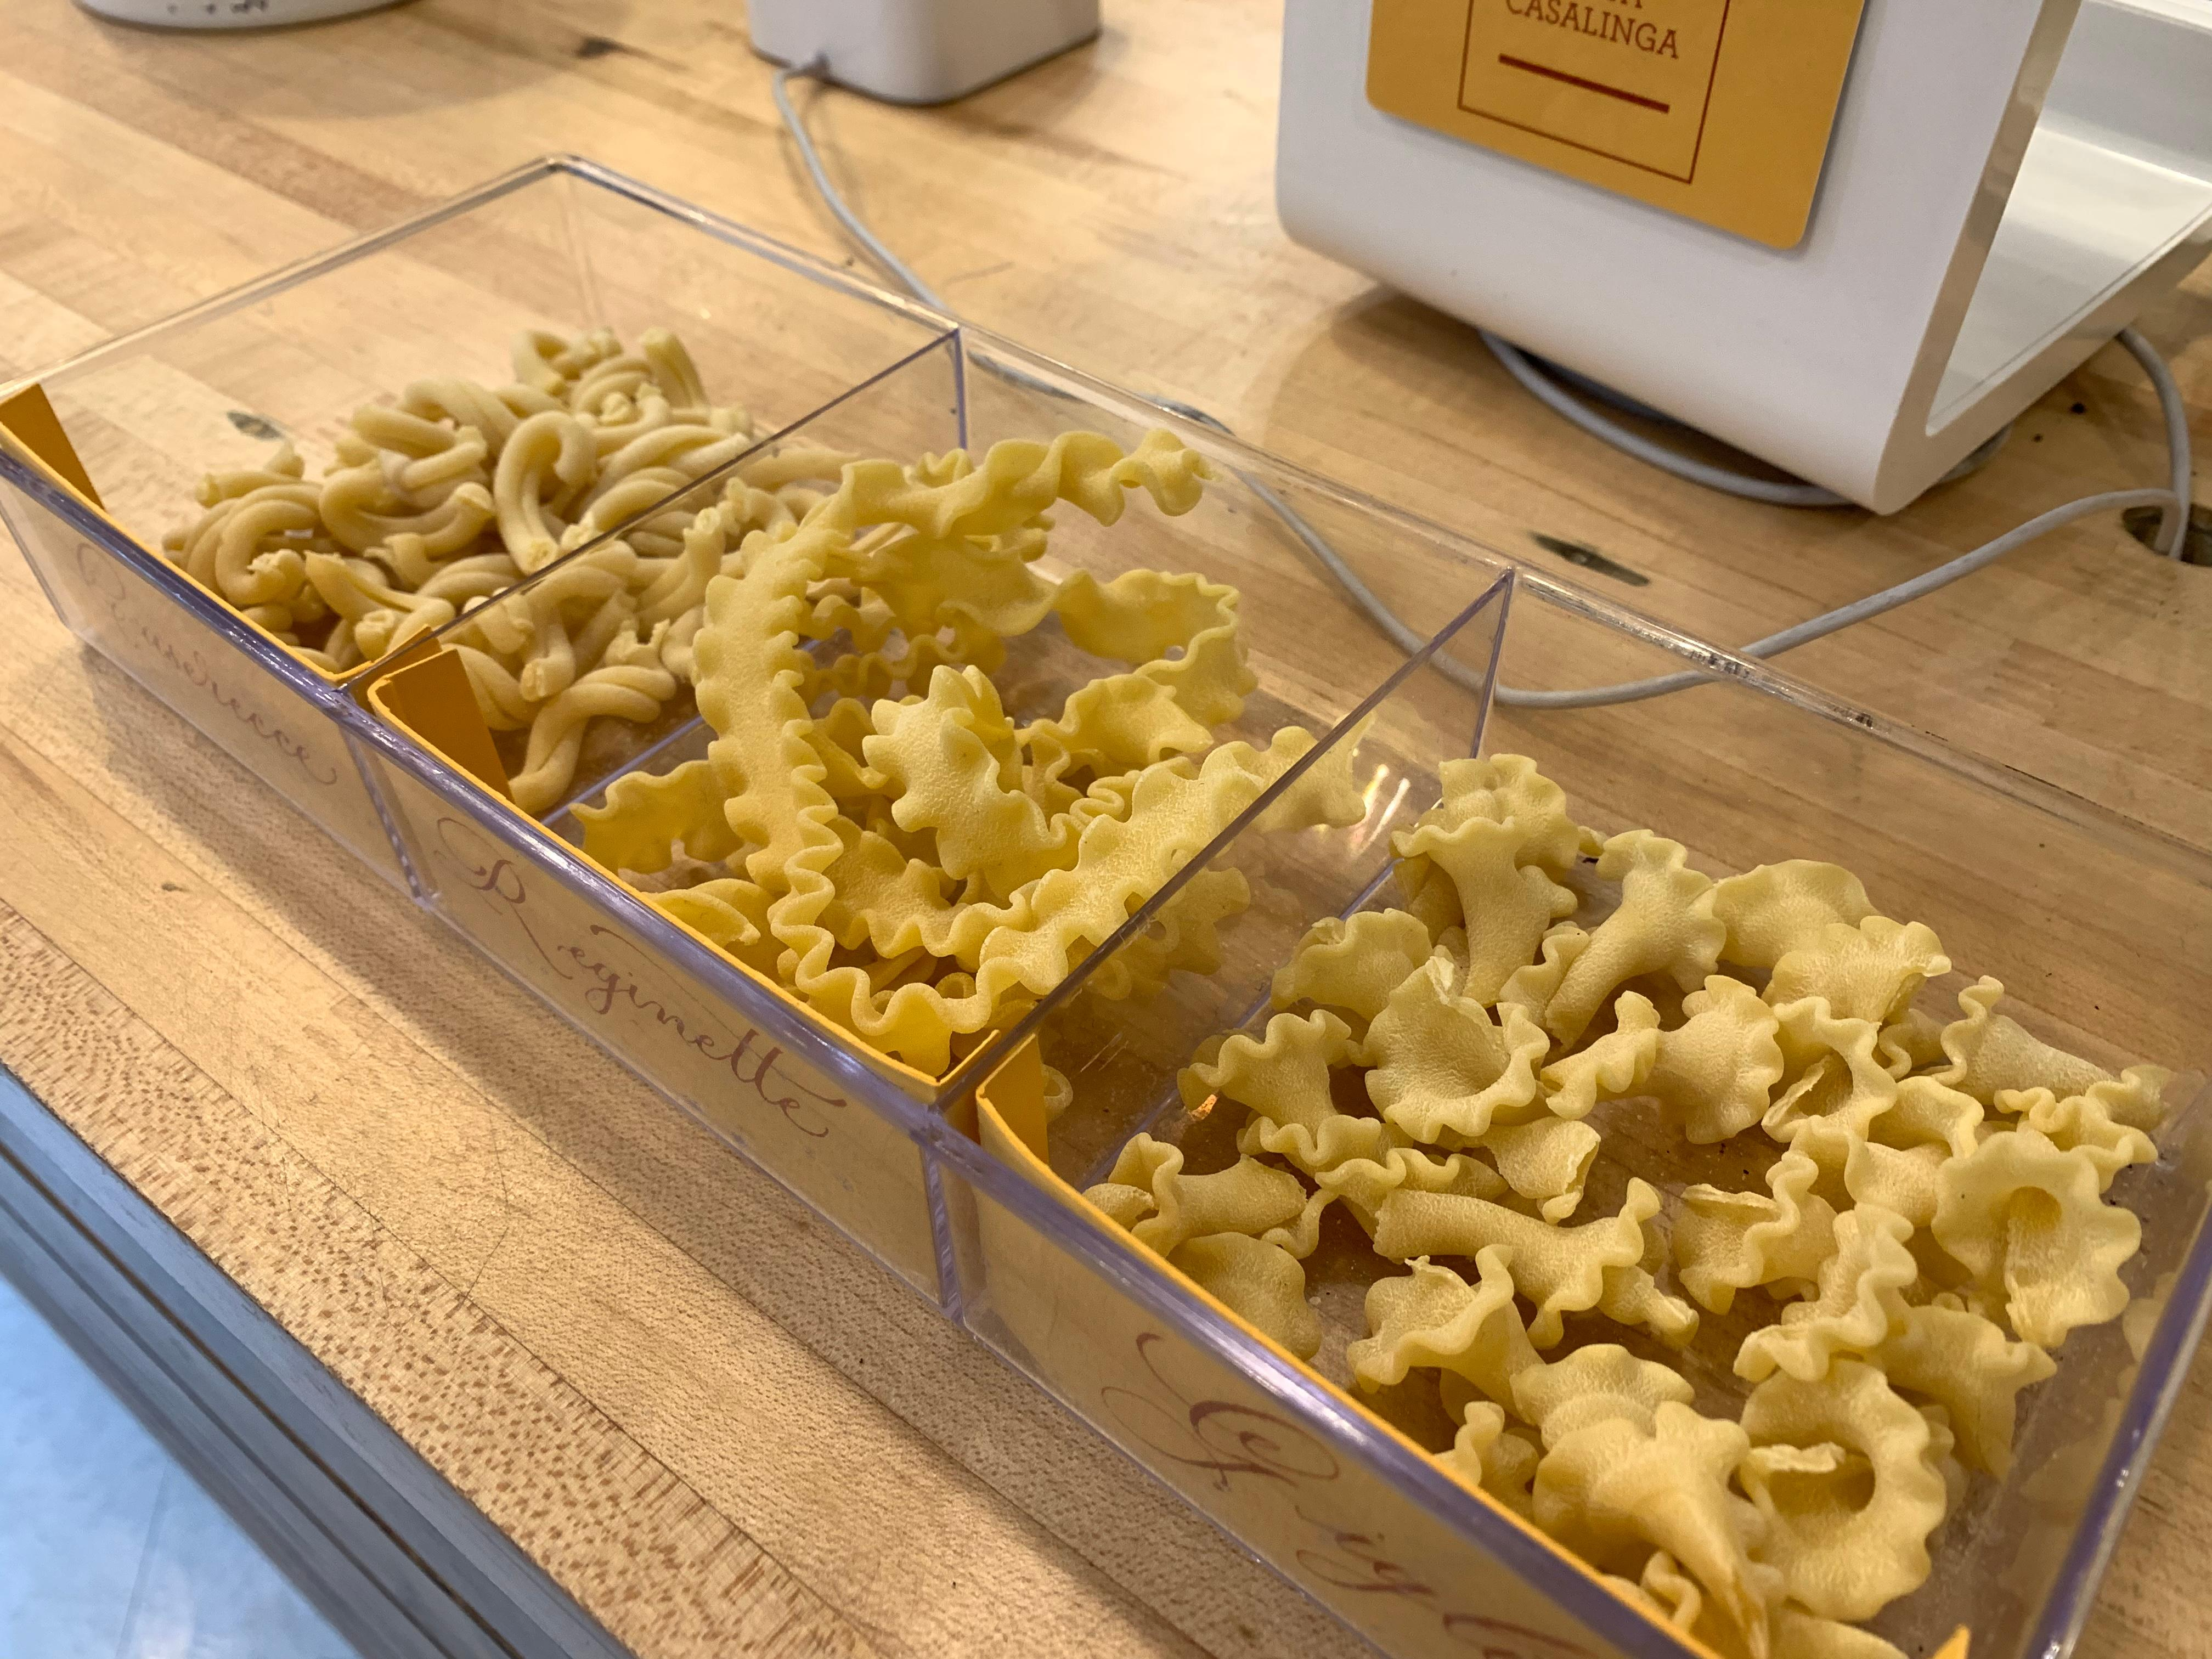 A few of the pasta shapes at Pike Place Market's Pasta Casalinga. From left to right, Casarecce, Reginette, and Gigli. (Image: Frank Guanco)